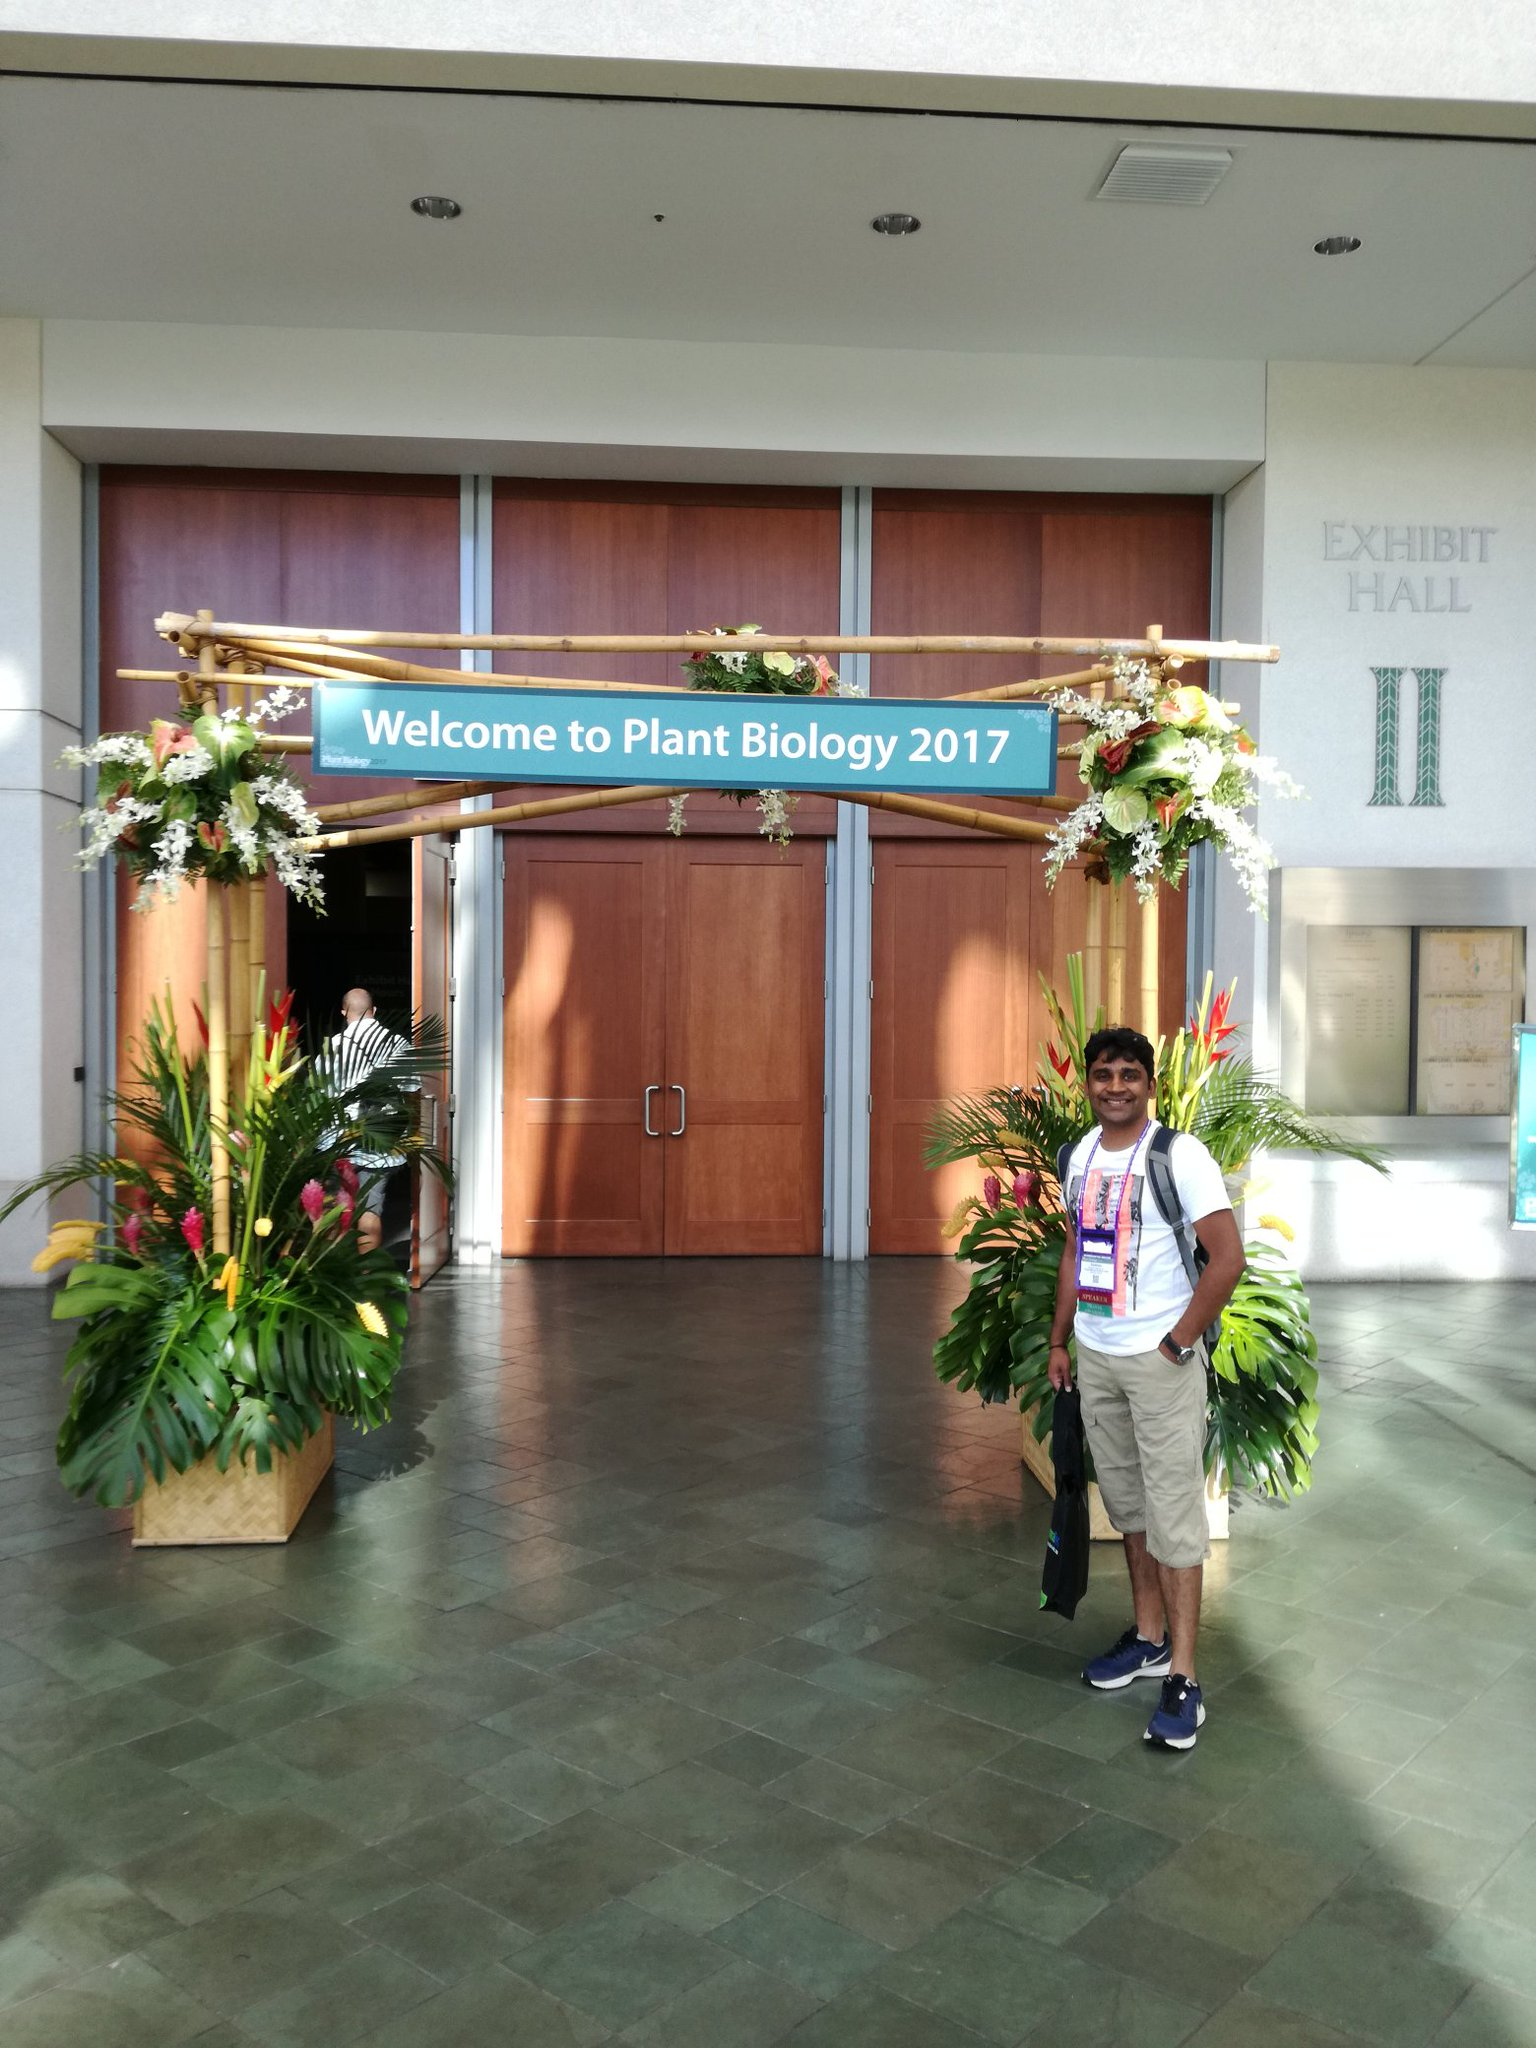 Looking forward to do networking and hear exciting research and in #plantbio17 meeting #Honolulu https://t.co/P2O4XTw6Px